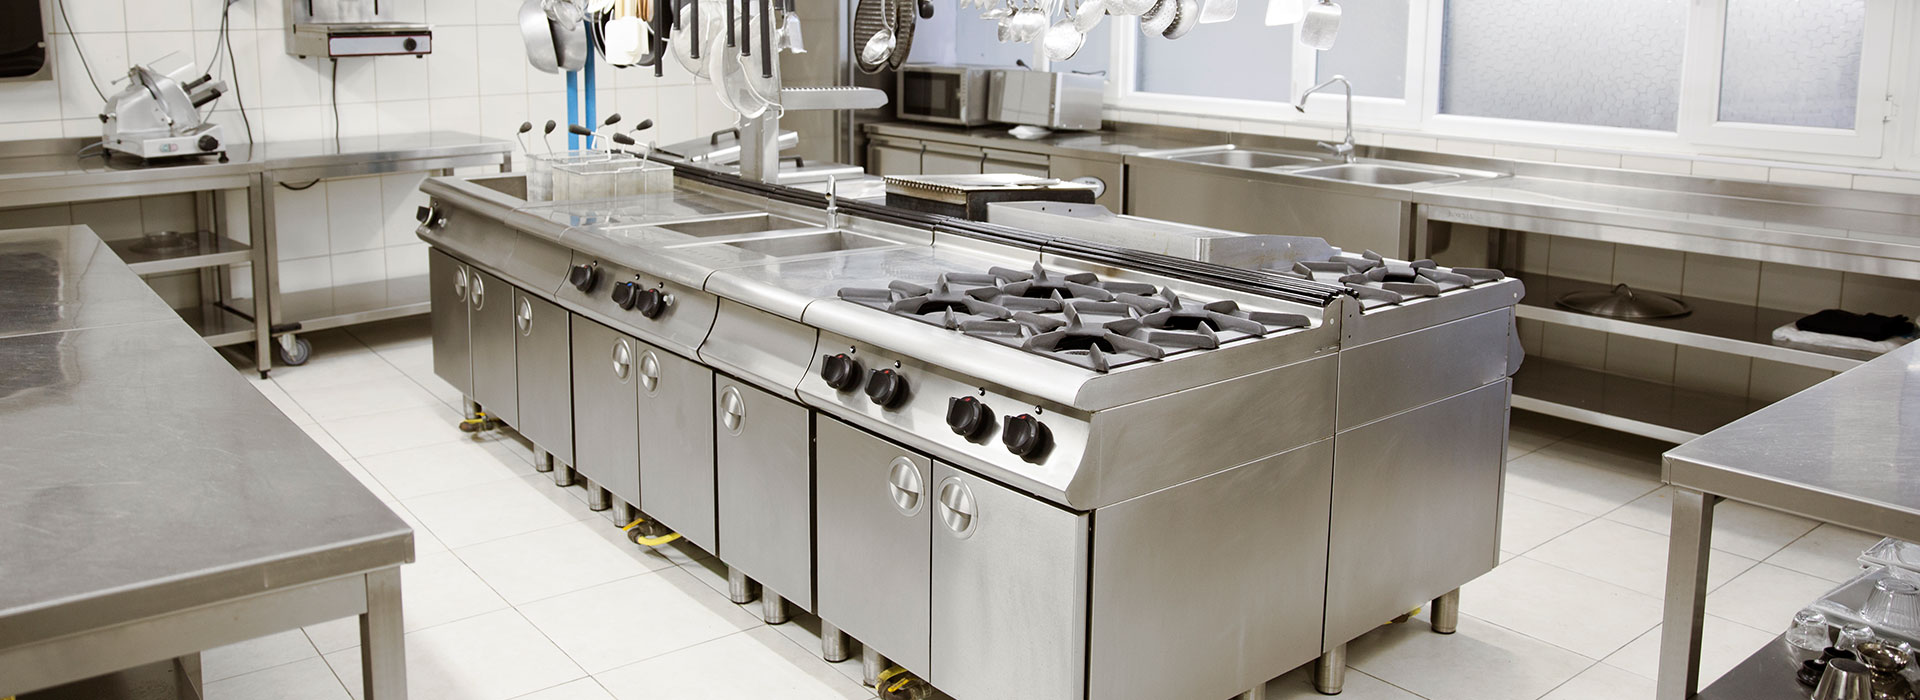 Commercial Stove Repair Buford GA